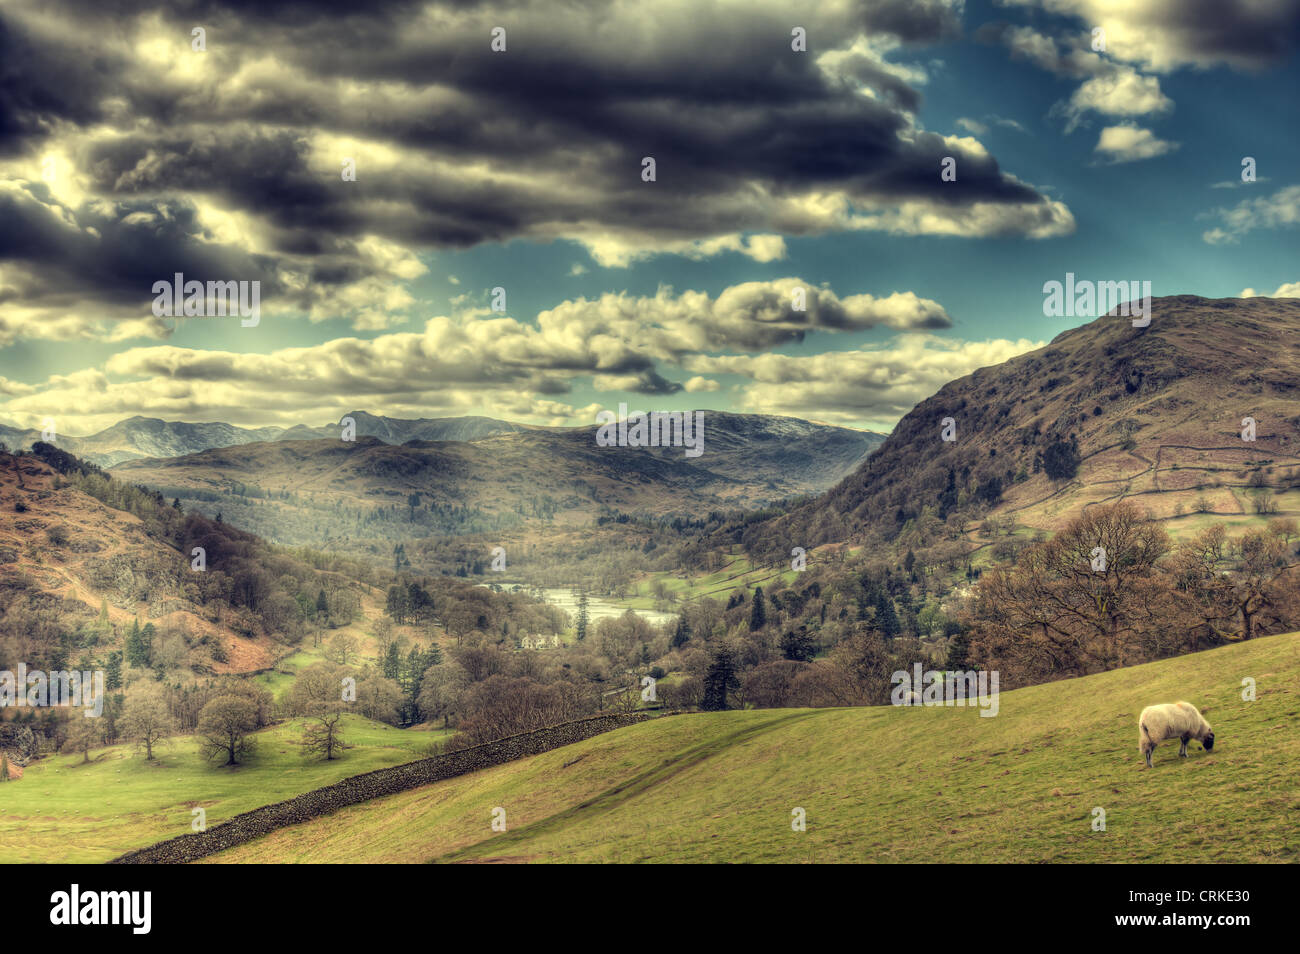 View of lake winderemre from high in moutains with wall and sheep - Stock Image